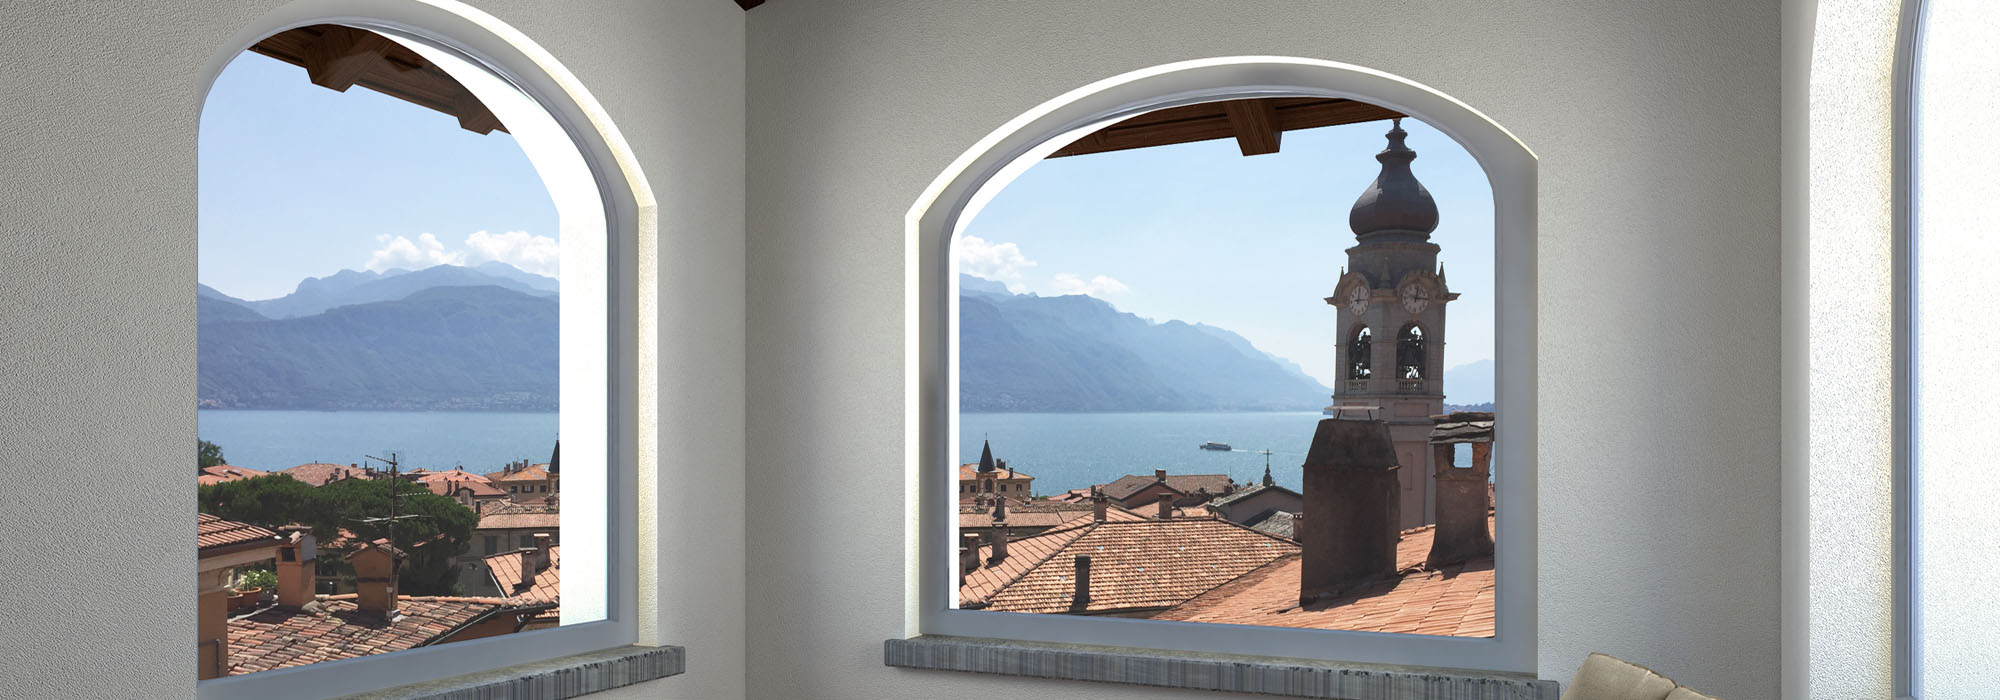 New stylish apartments in restored period villa in Menaggio